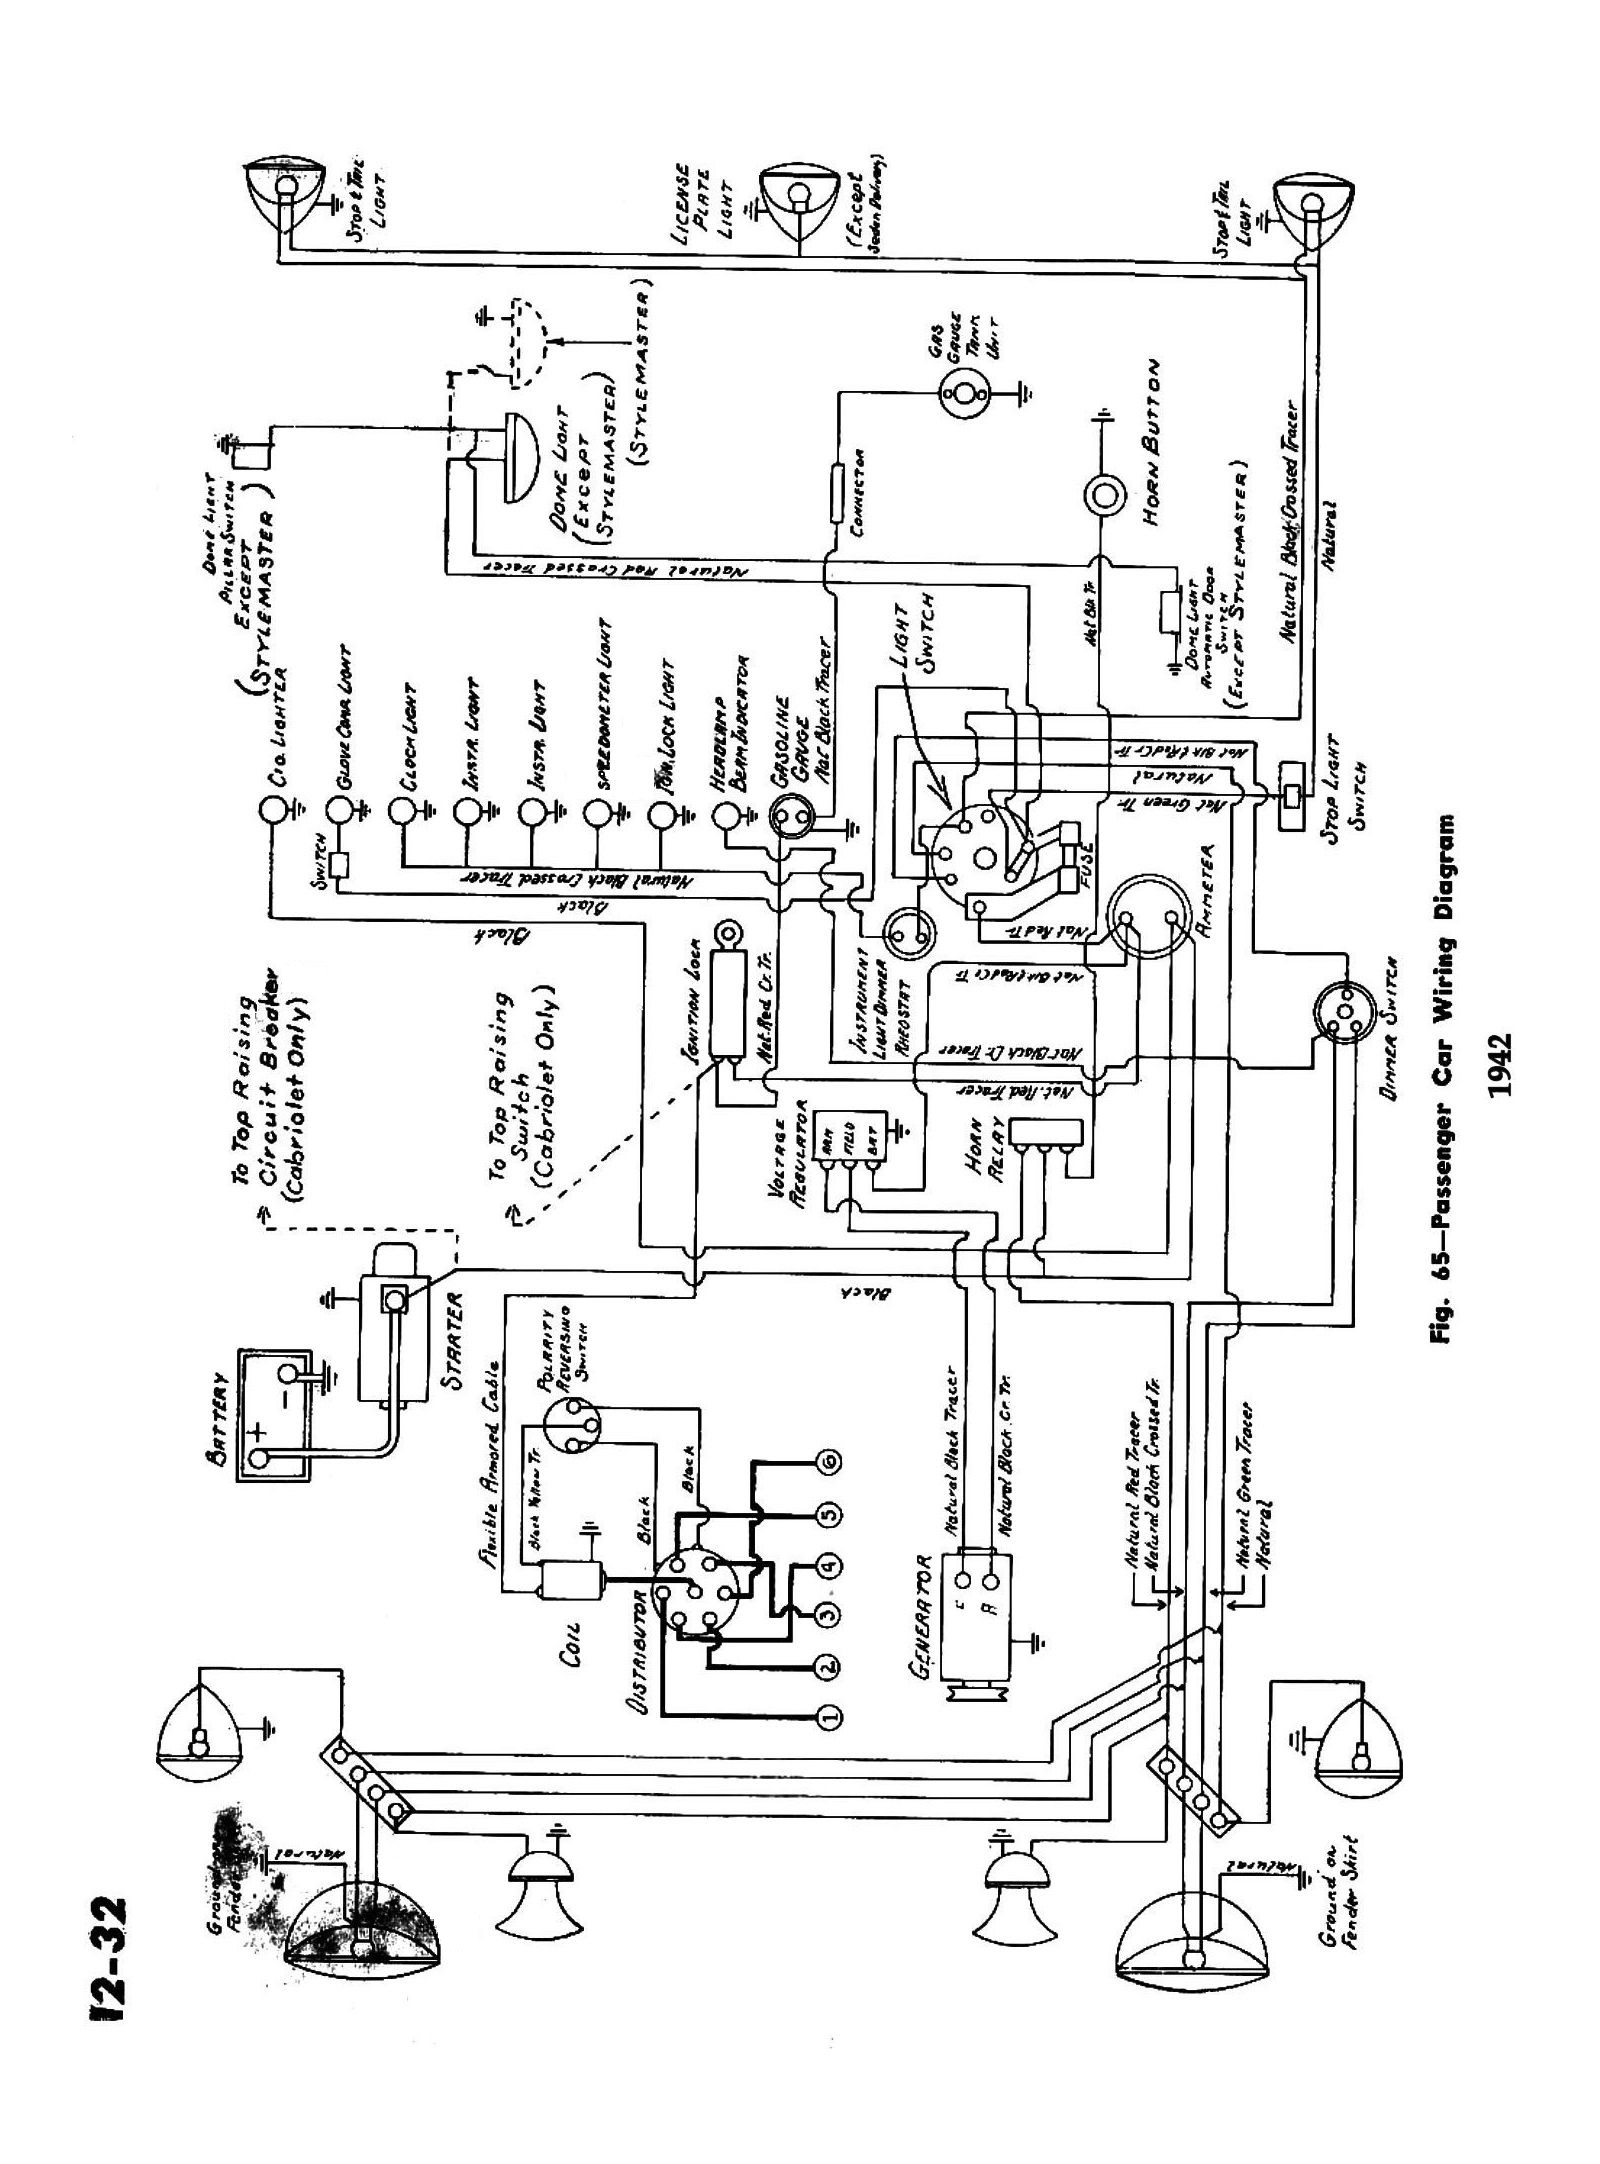 hight resolution of ignition circuit for 1934 chevroletcar wiring diagram wiring diagrams 2011 dodge wiring diagram 1932 dodge wiring diagram